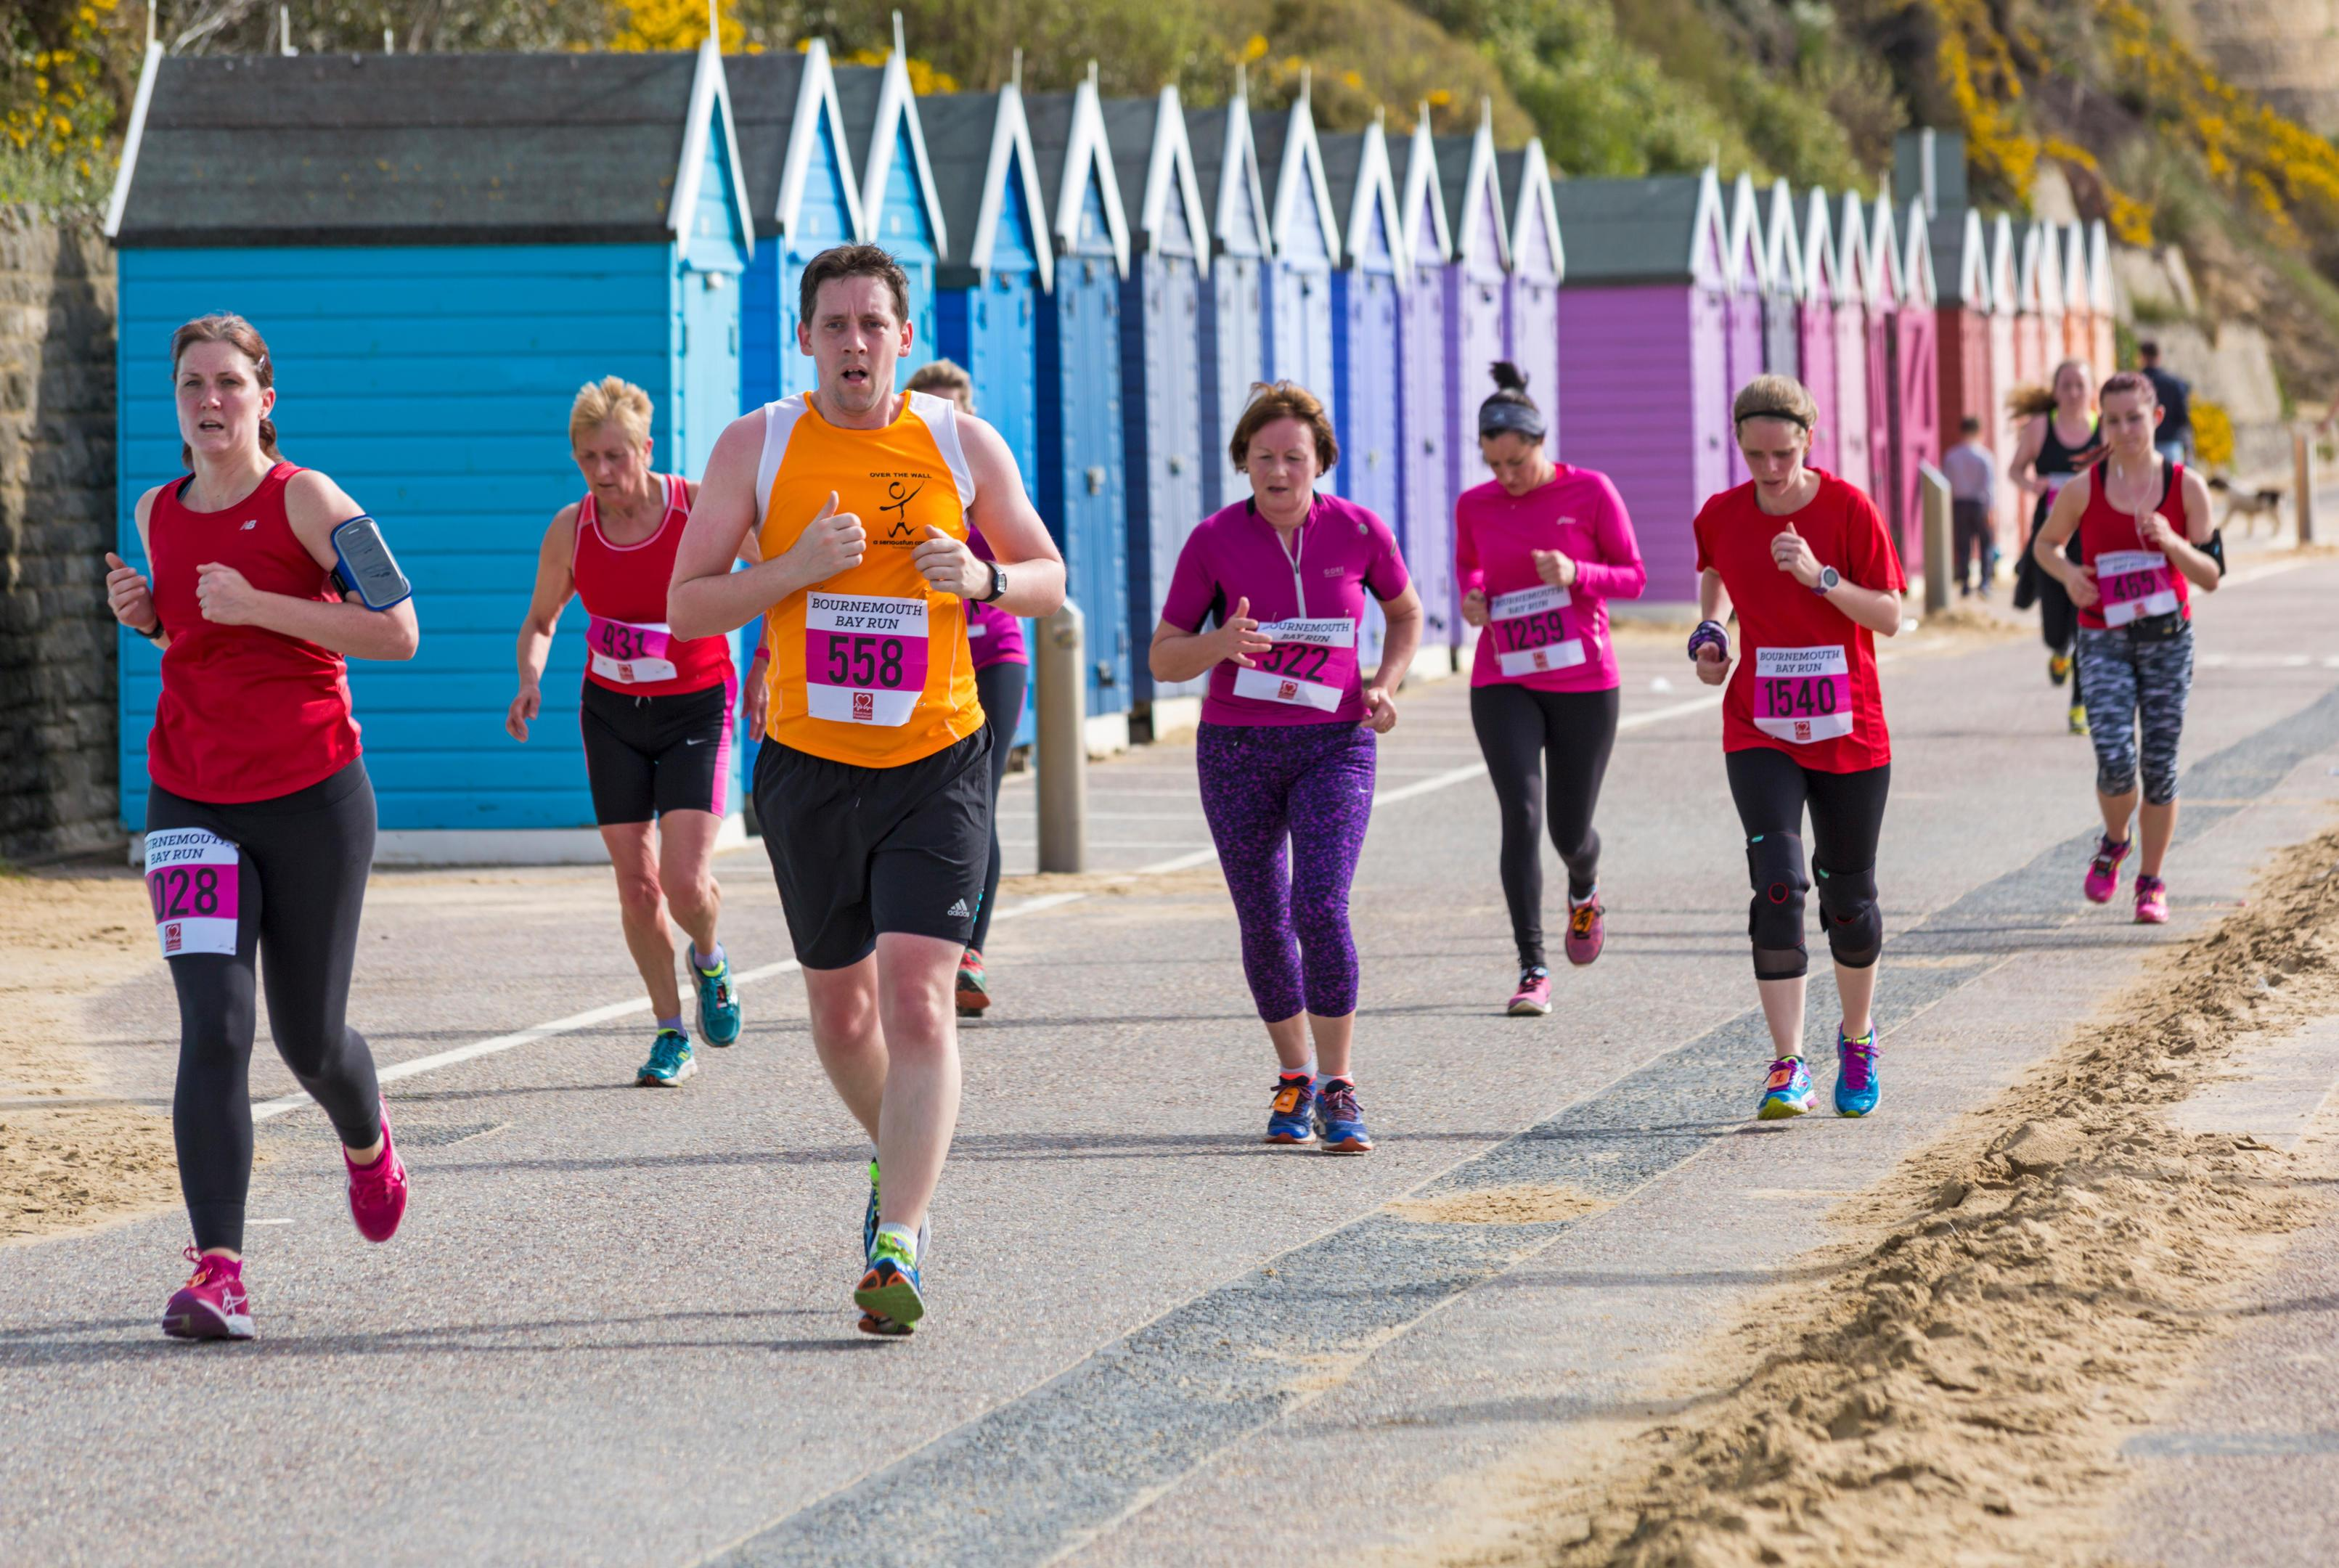 Running marathons regularly could leave you with an enlarged heart, experts have warned